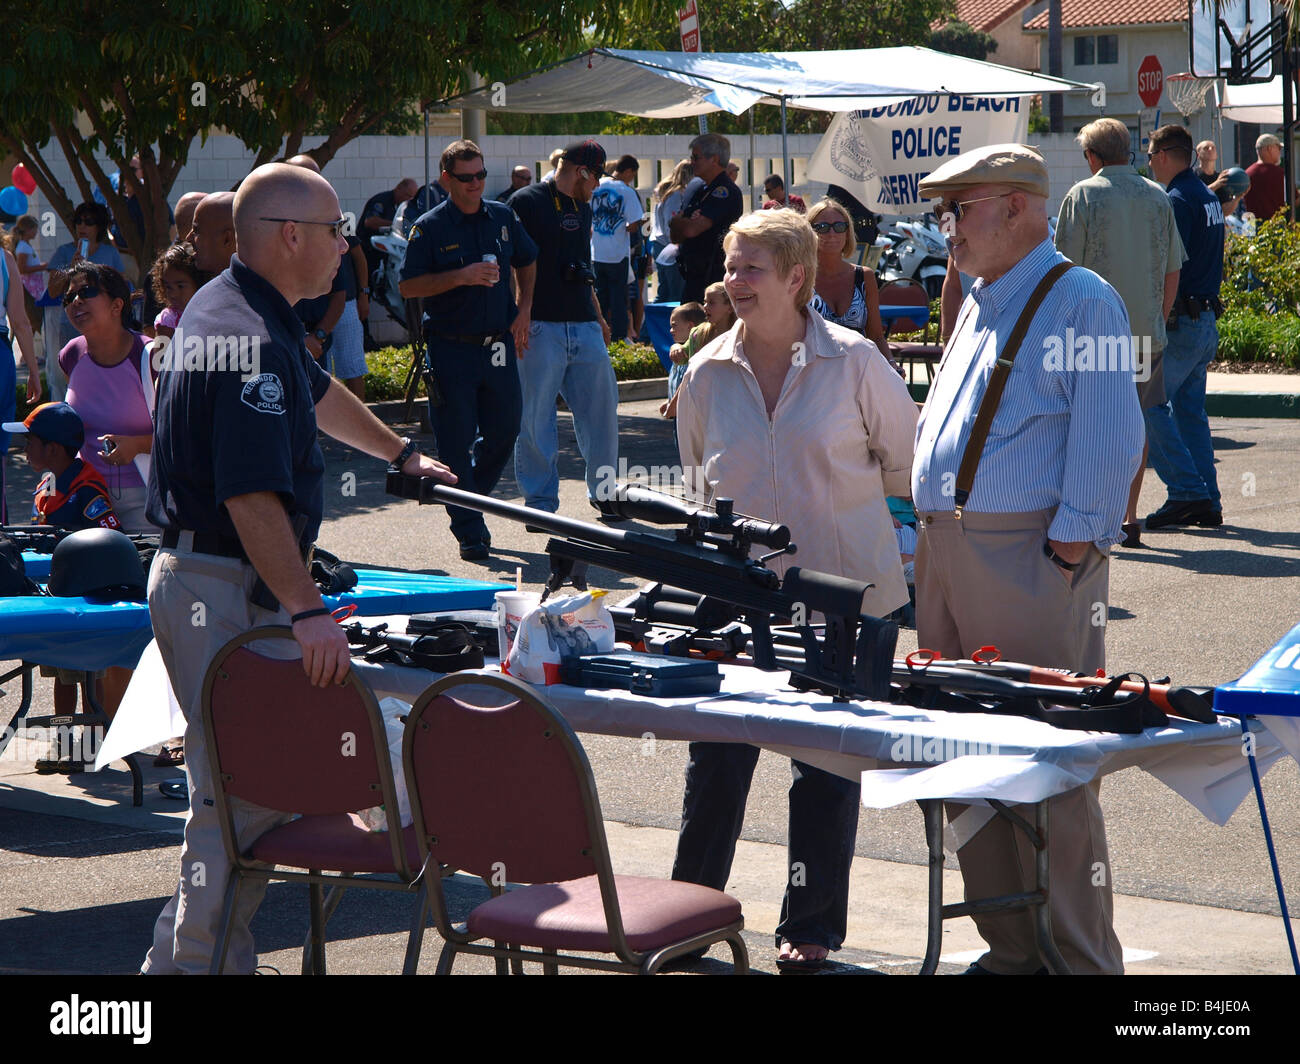 Redondo Beach police officer explains some of the weaponry used by law enforcement, to fair attendees - Stock Image